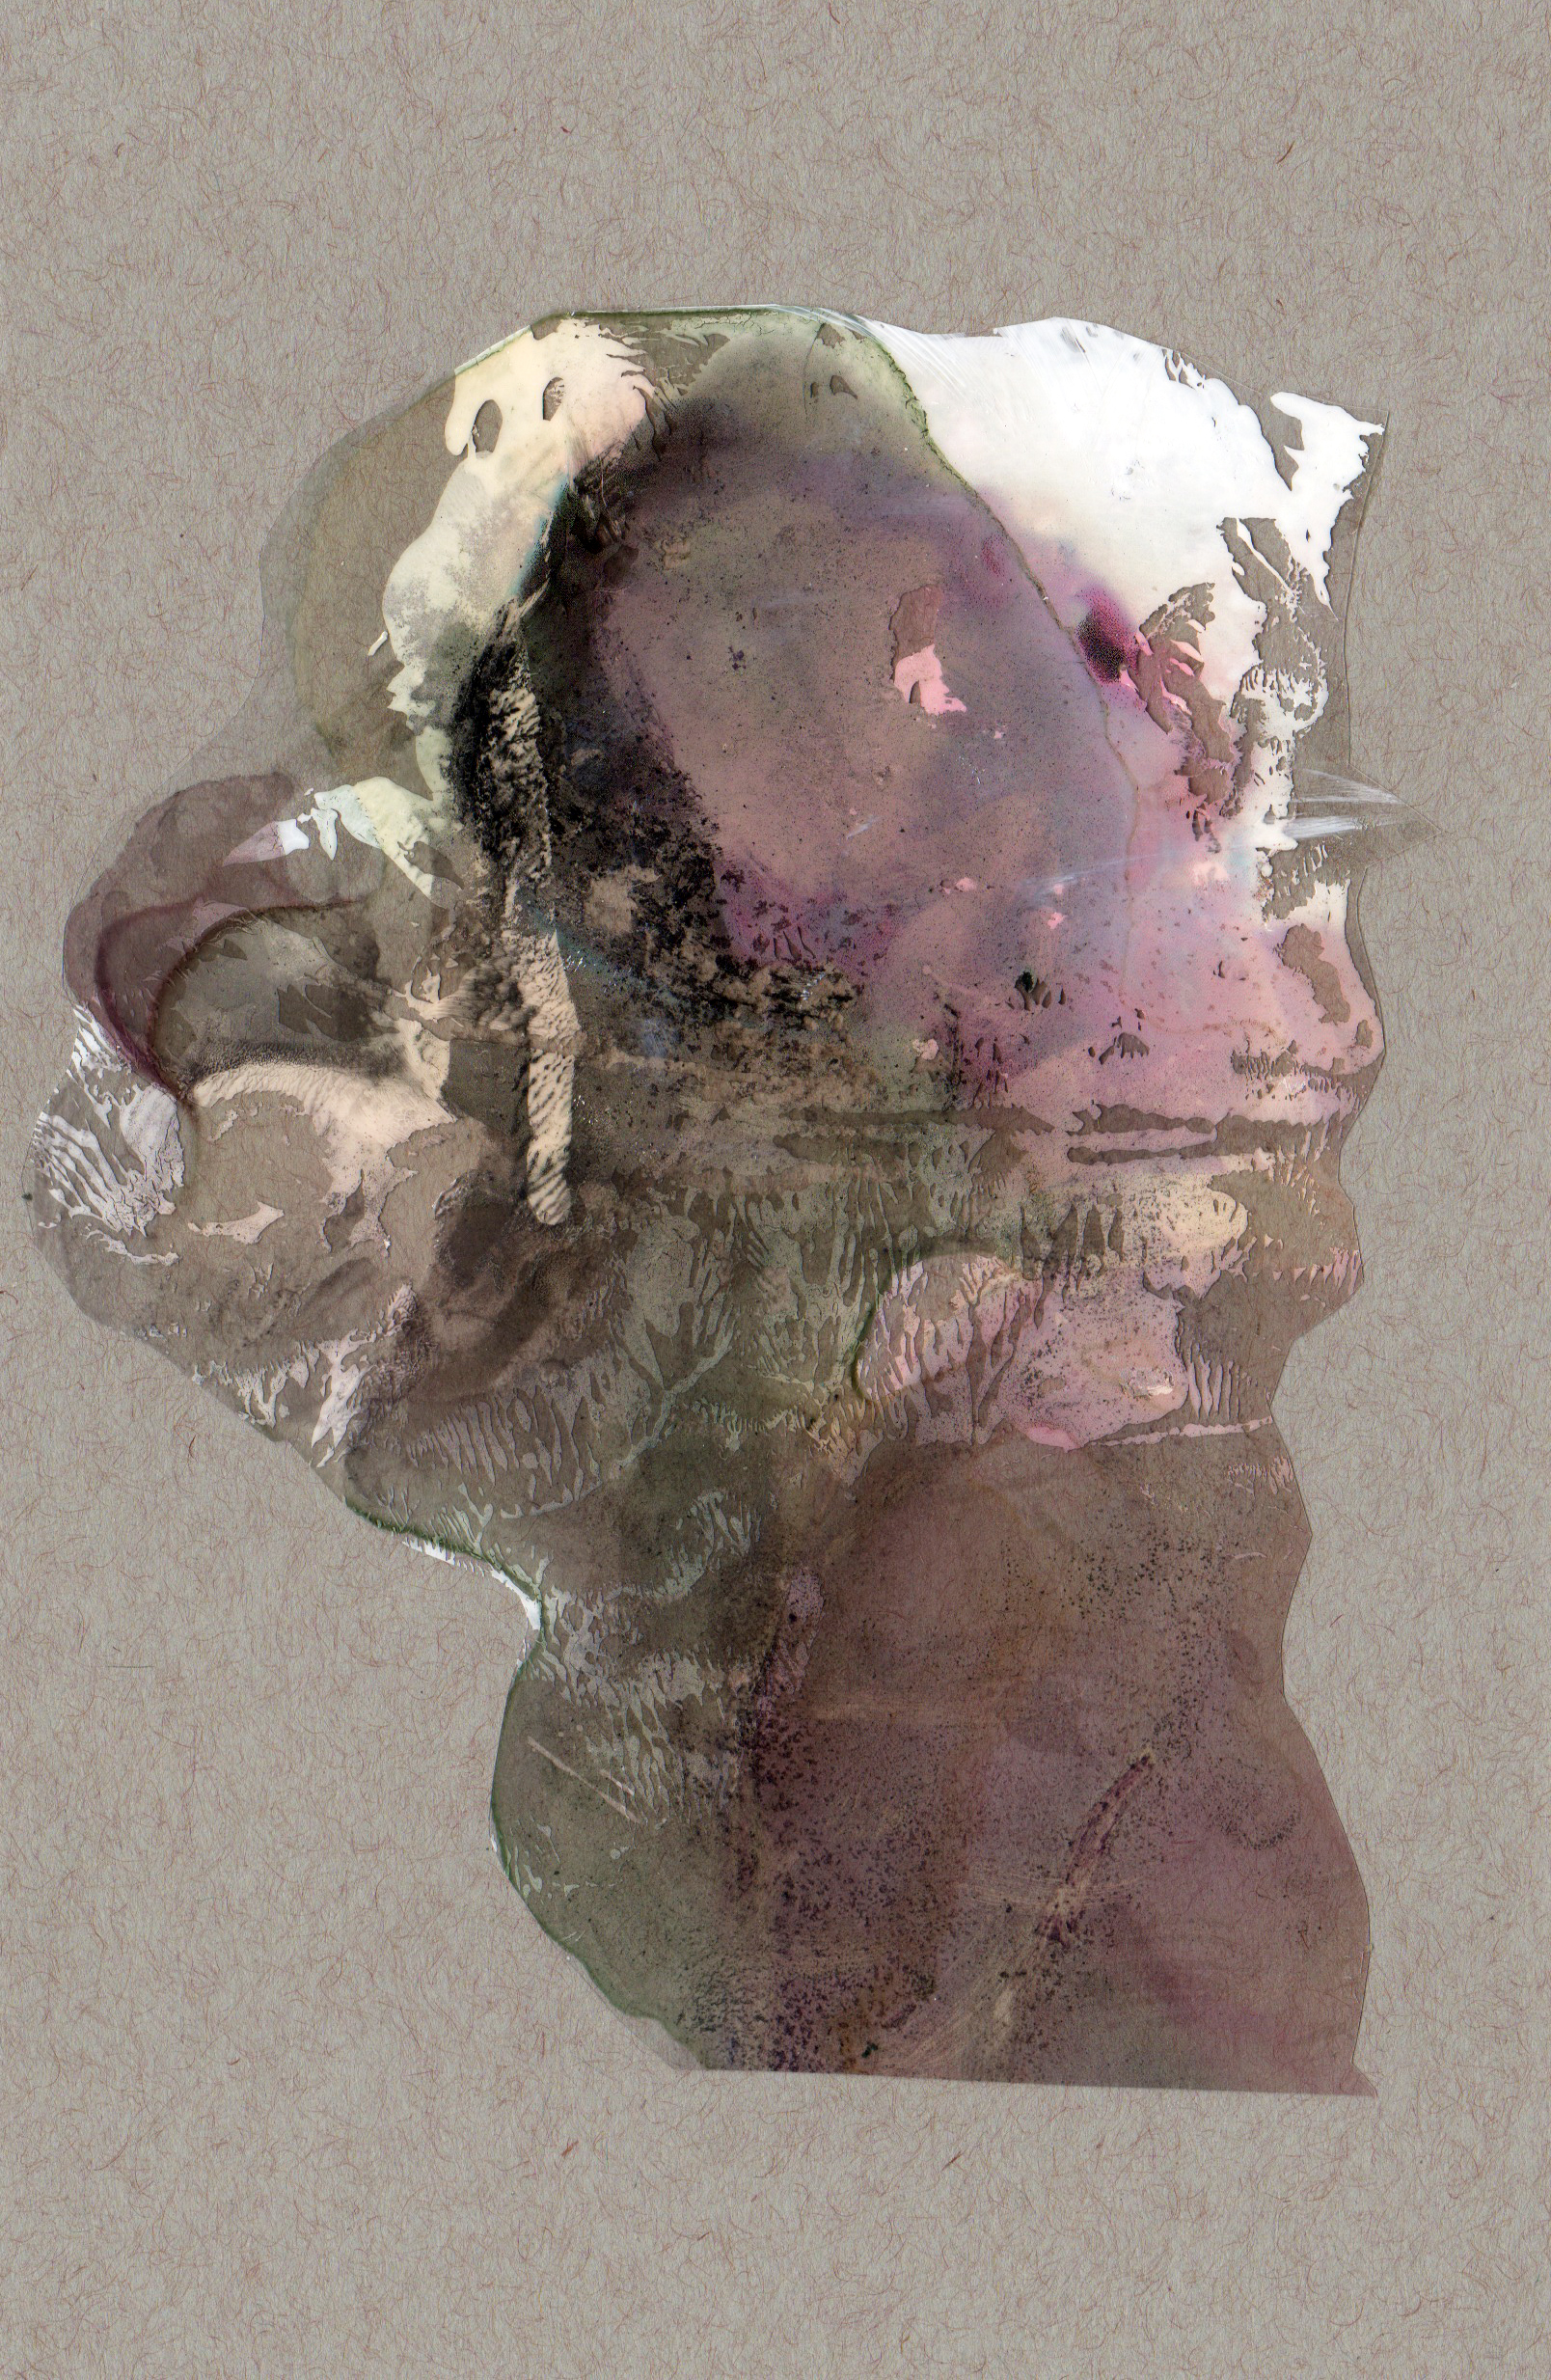 Narrow Escape, 2014, paint transparency archival ink and paper, 8.5x5.5 inches